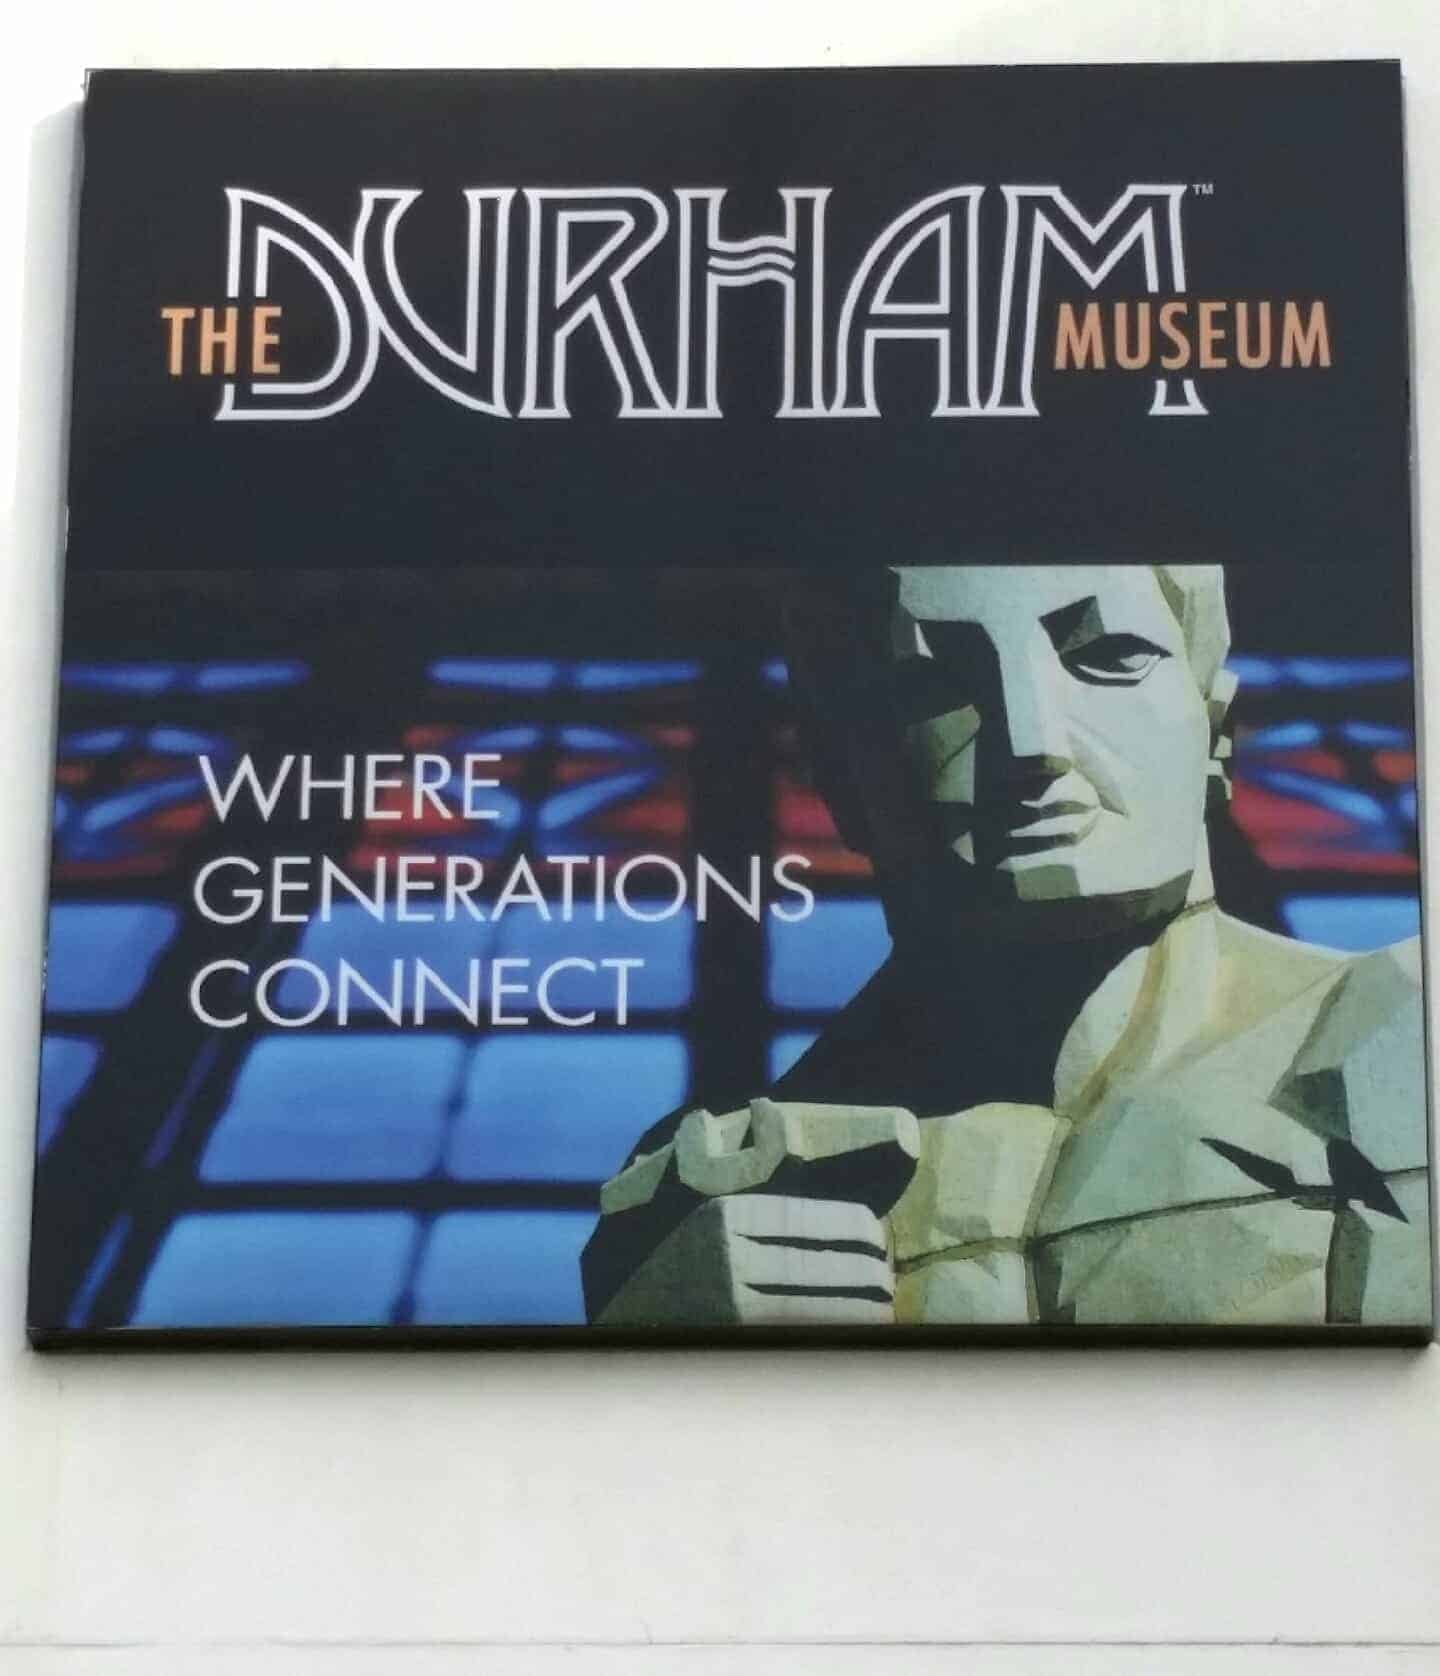 The Durham Museum